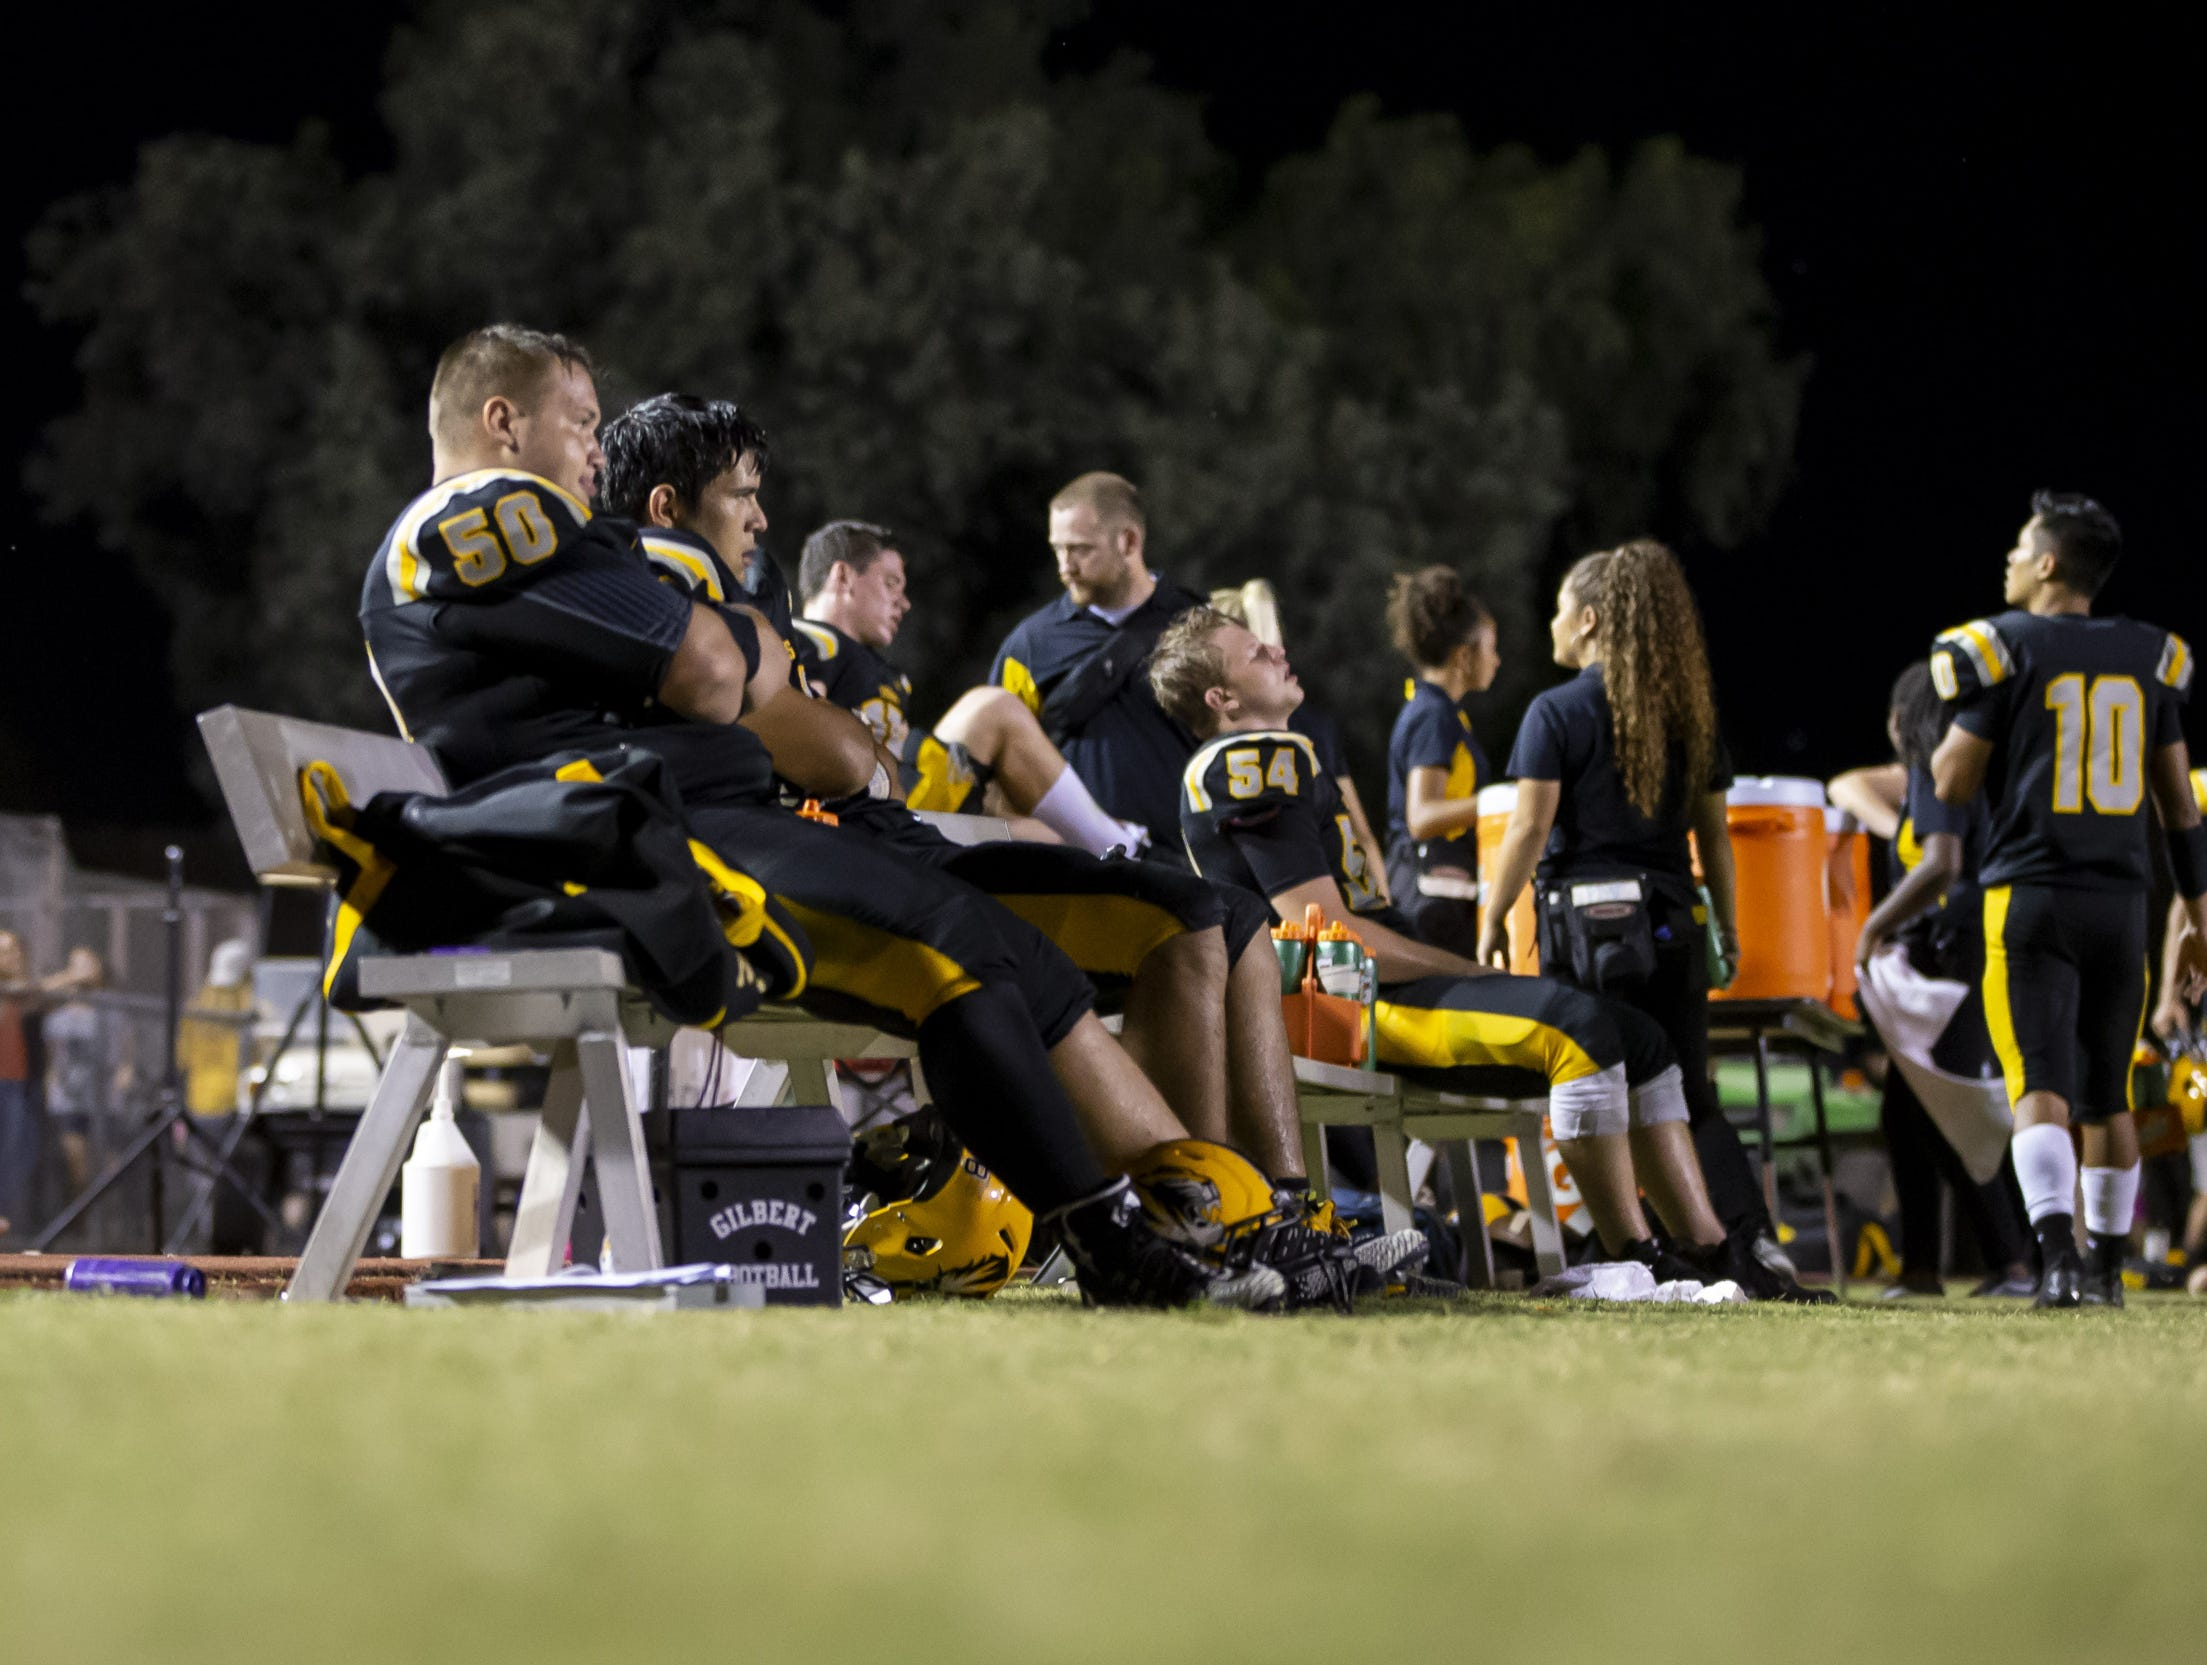 The Gilbert Tigers react to a 47-0 deficit against the Notre Dame Prep Saints at Gilbert High School on Friday, Aug. 31, 2018 in Gilbert, Arizona.